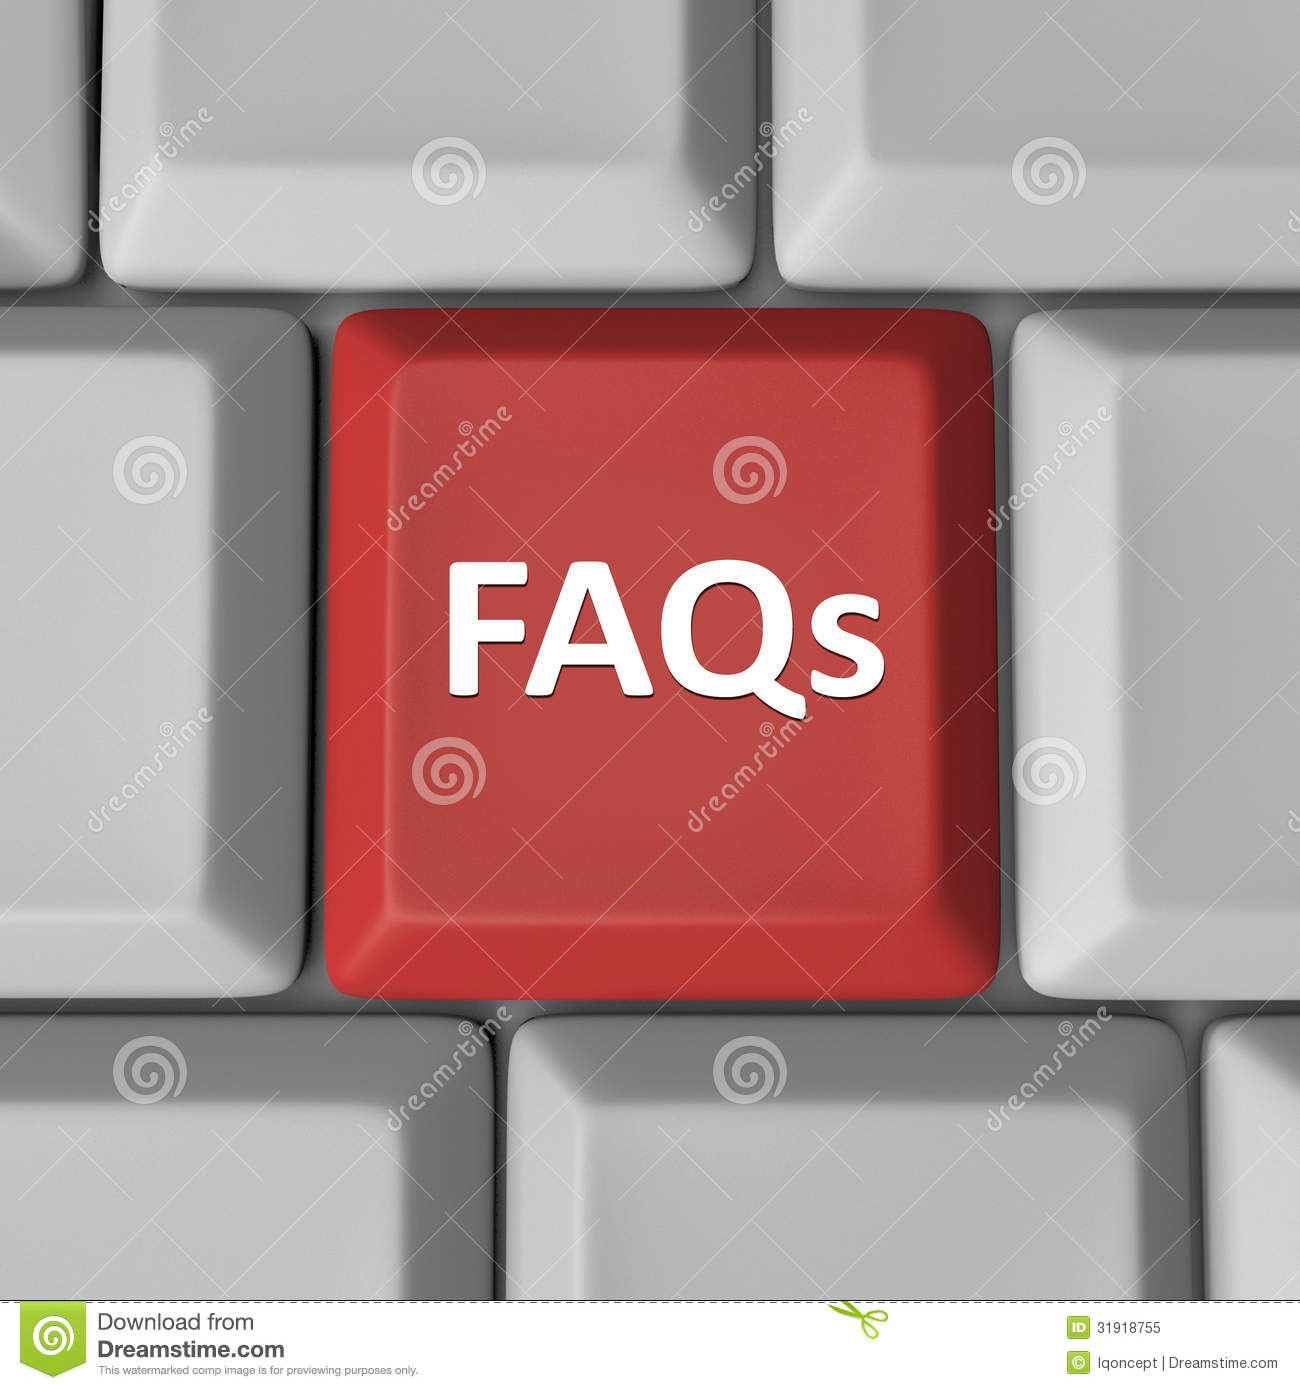 what is the meaning of faqs